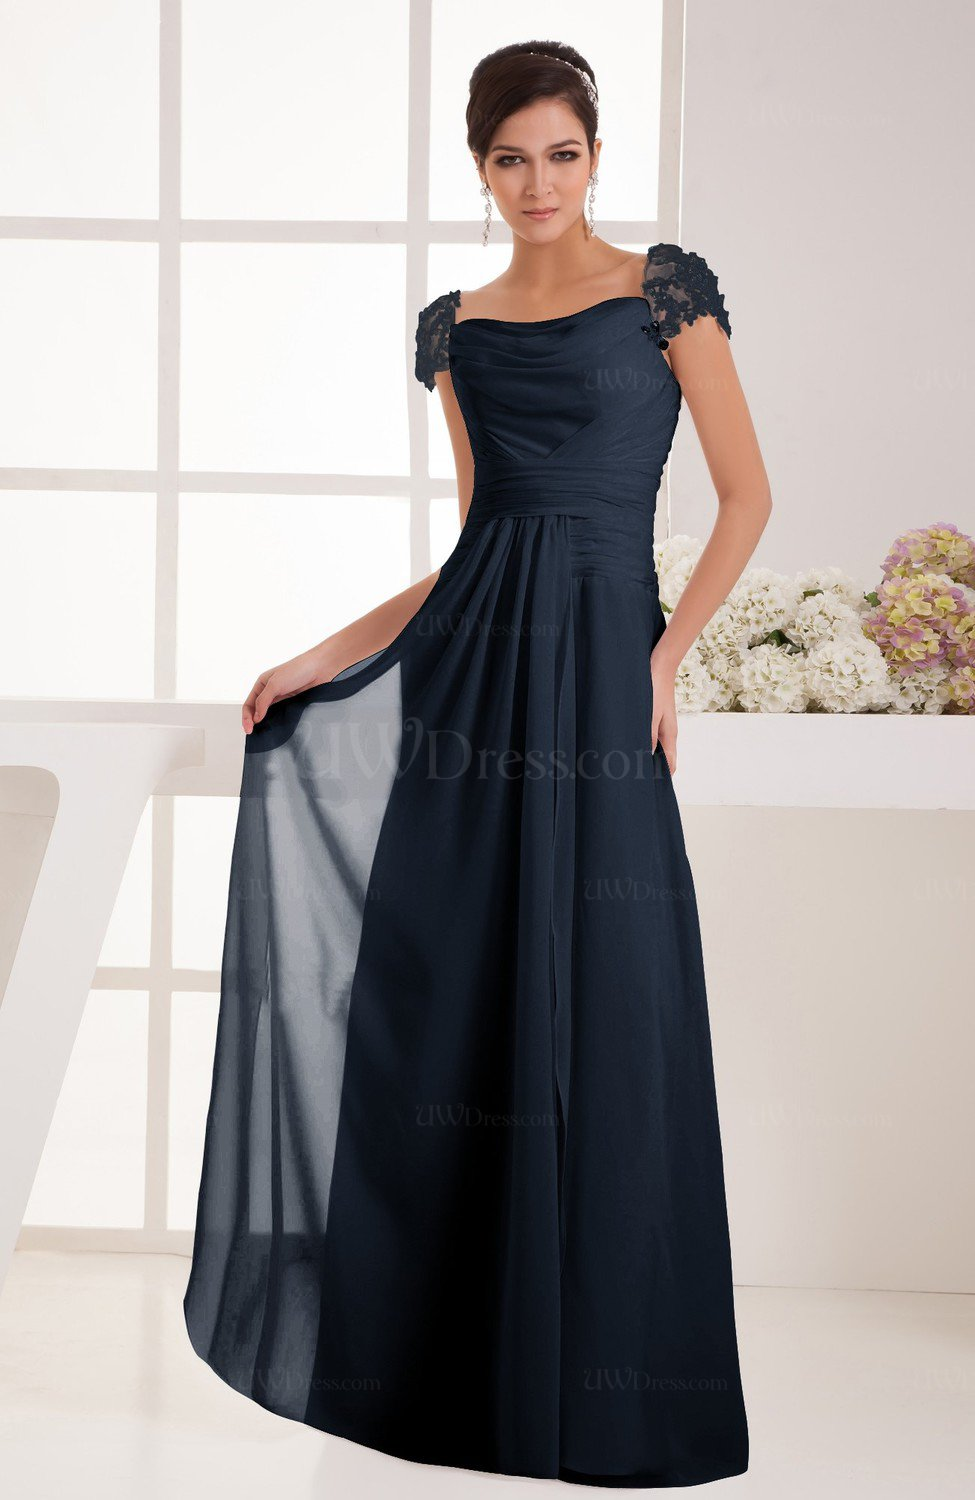 Bridesmaid dresses uwdress navy blue with sleeves bridesmaid dress chiffon trendy floor length amazing classic ombrellifo Choice Image